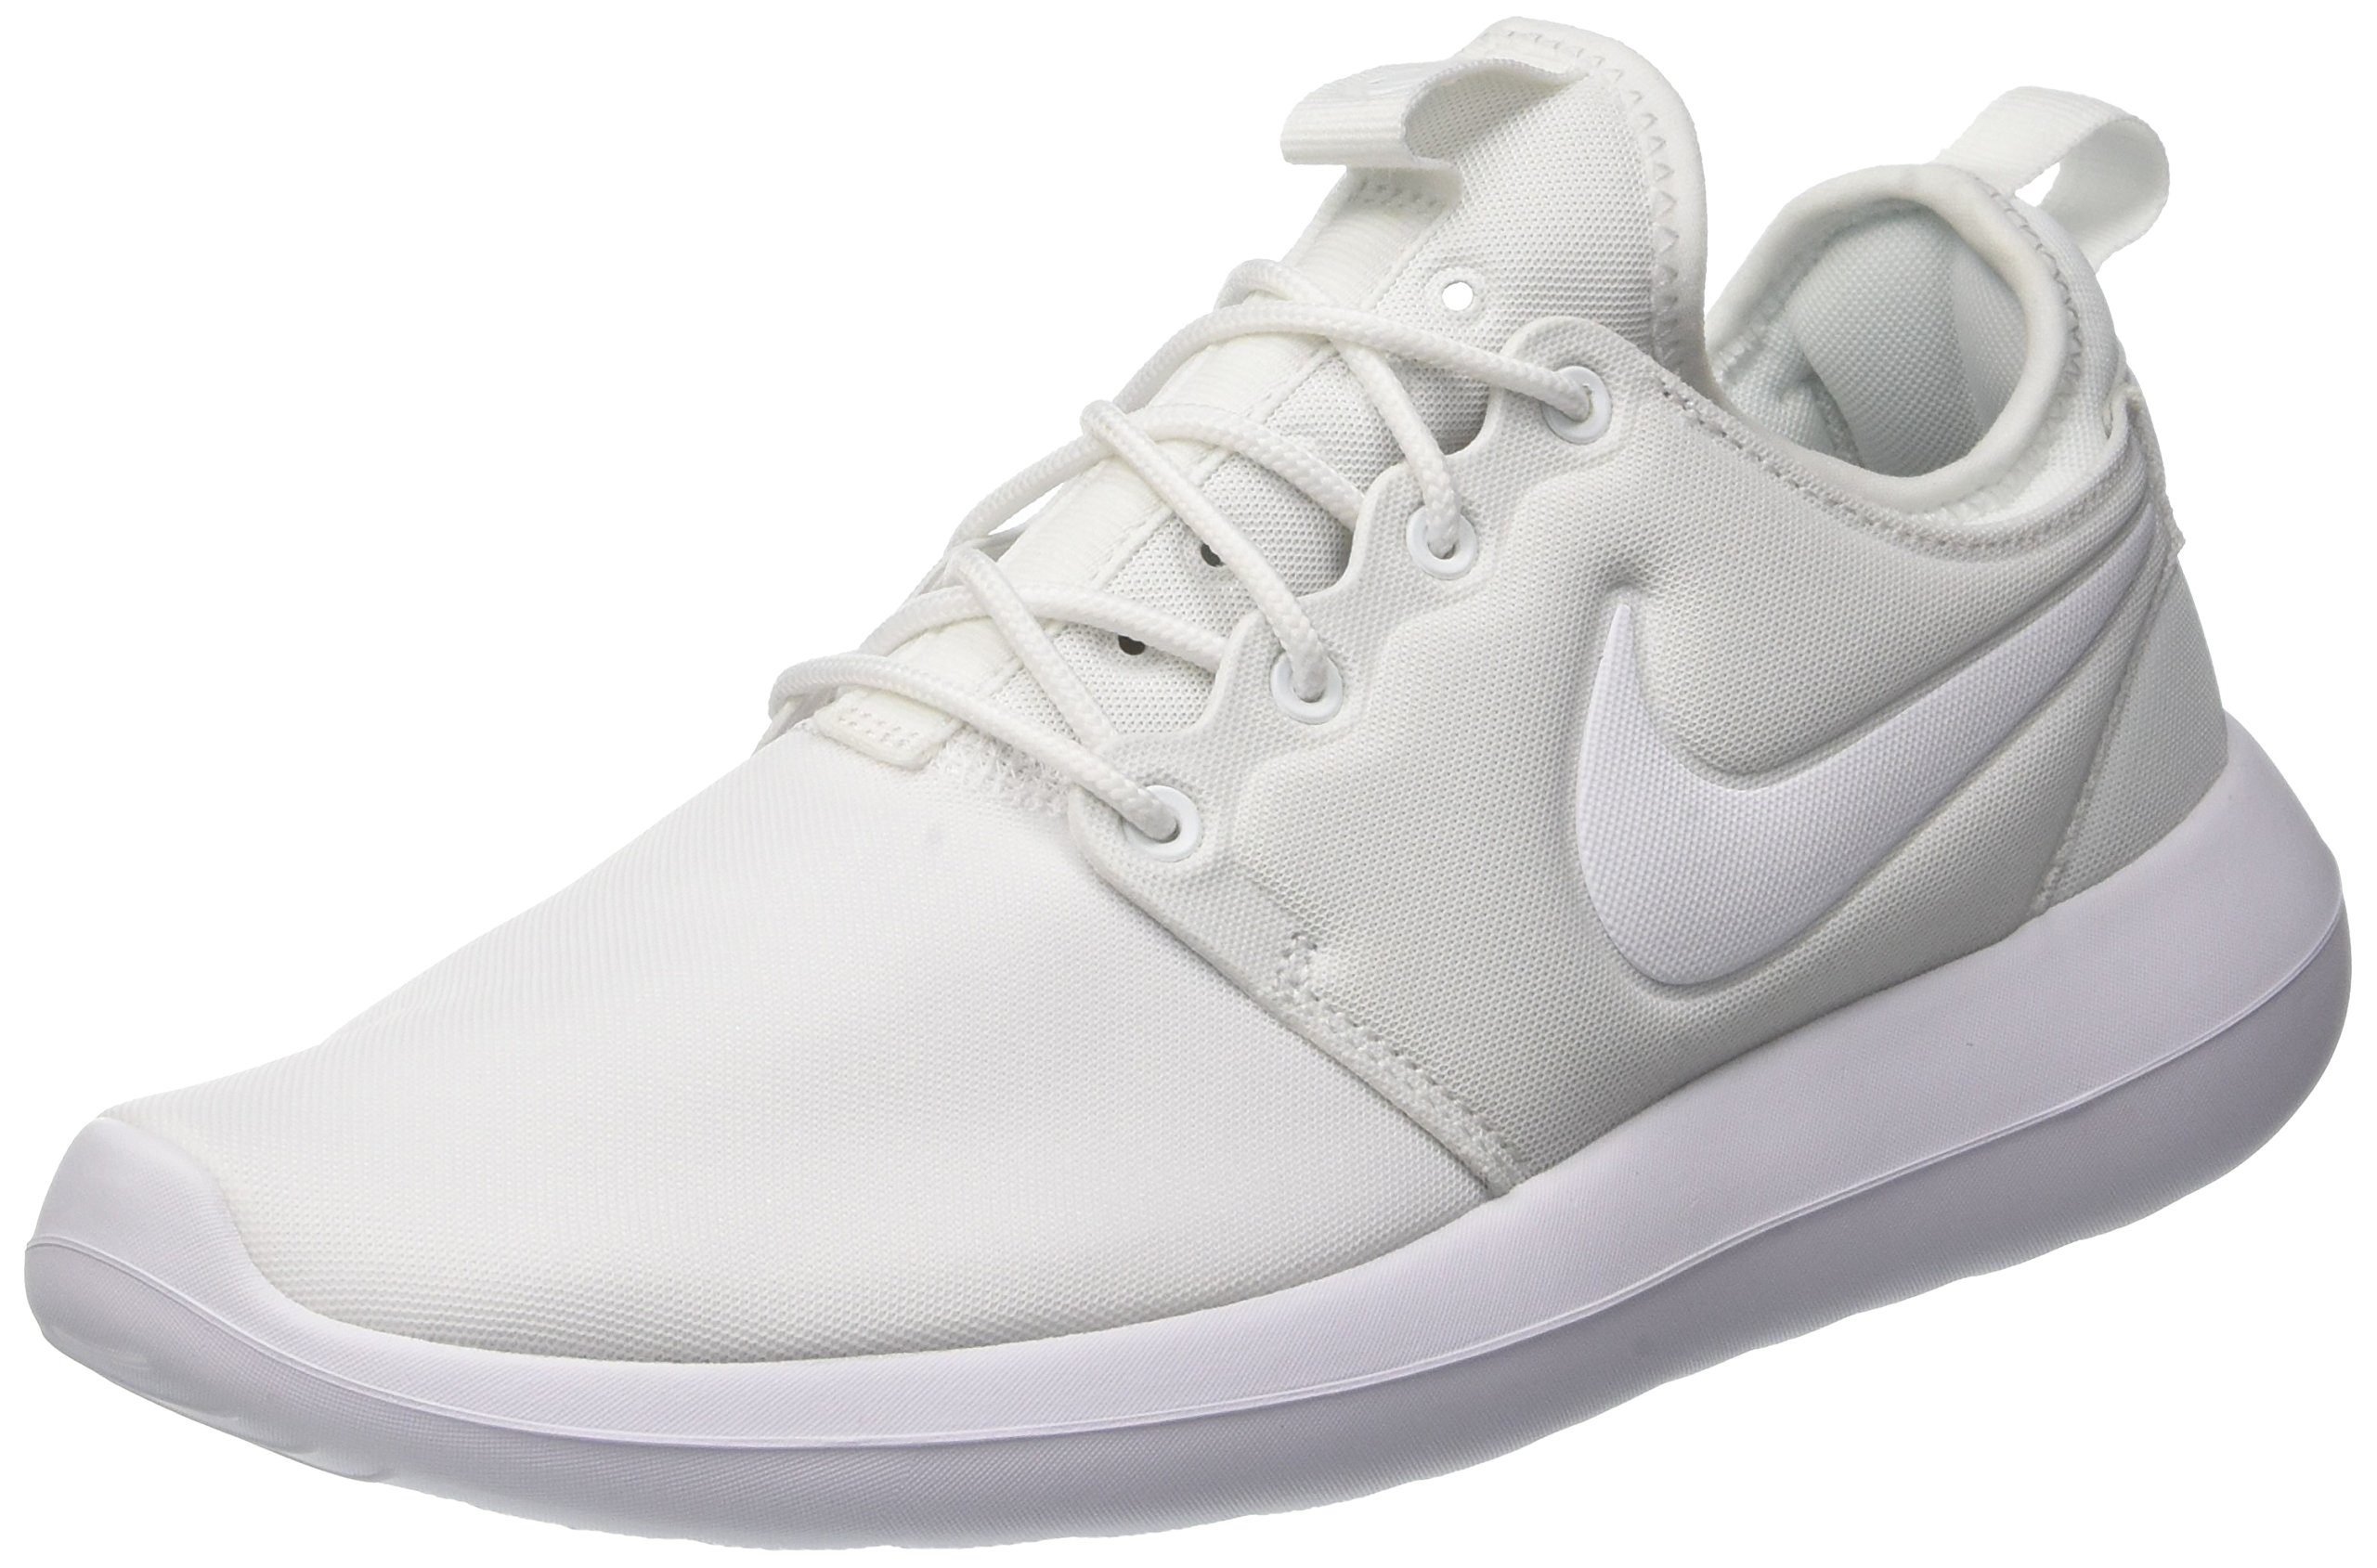 sports shoes 3acba b028a Galleon - Nike Womens Roshe Two Low Top Lace Up, White White-Pure Platinum,  Size 7.5